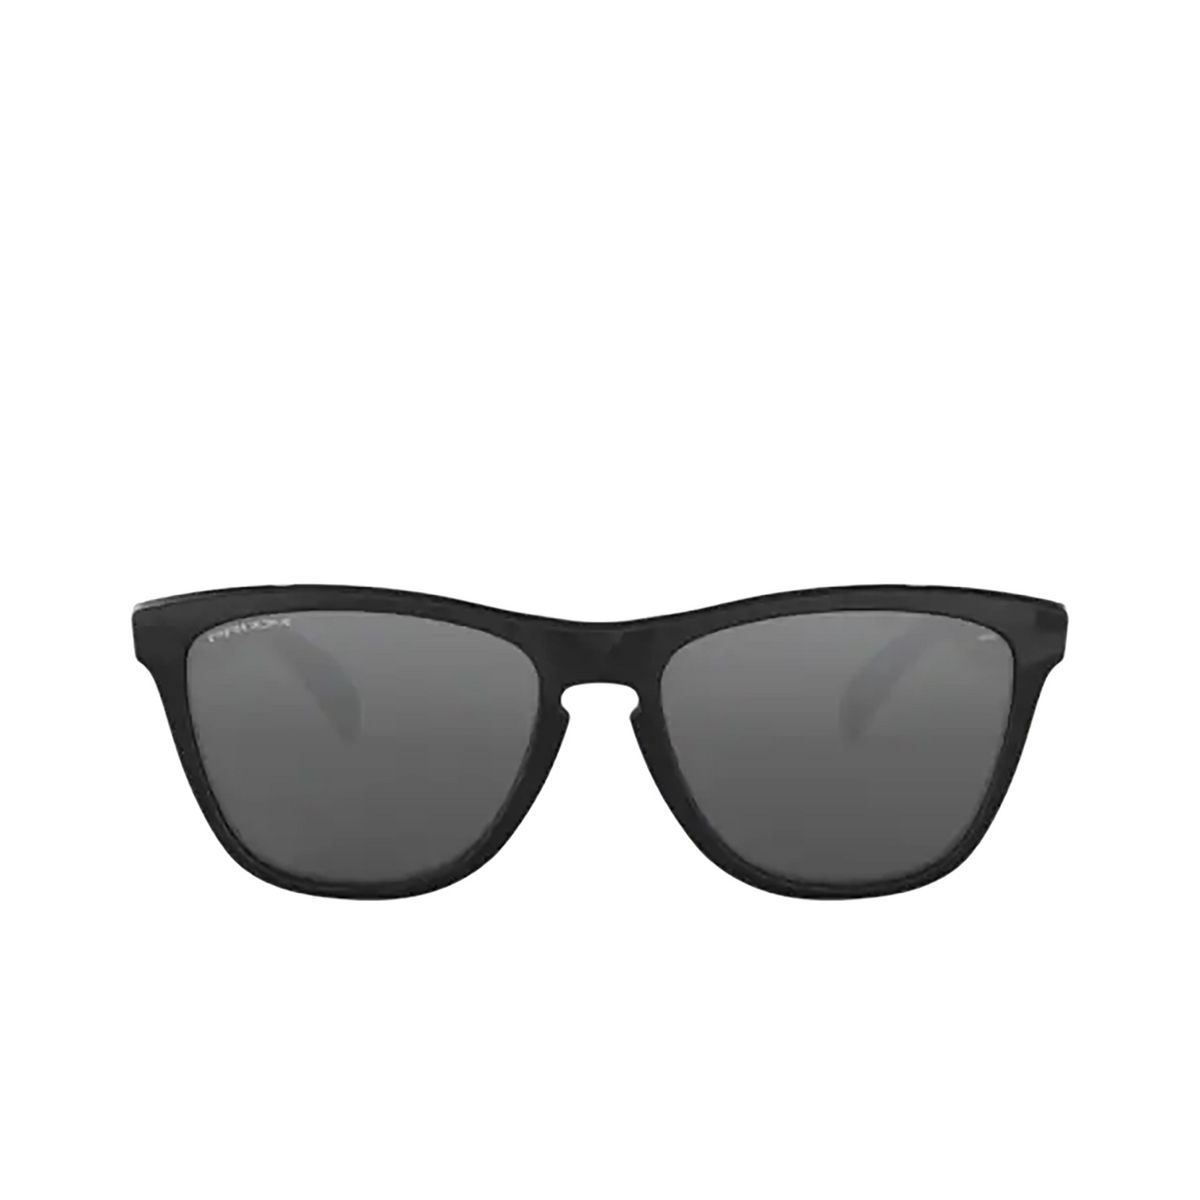 Oakley® Square Sunglasses: Frogskins OO9013 color Polished Black 9013C4 - front view.